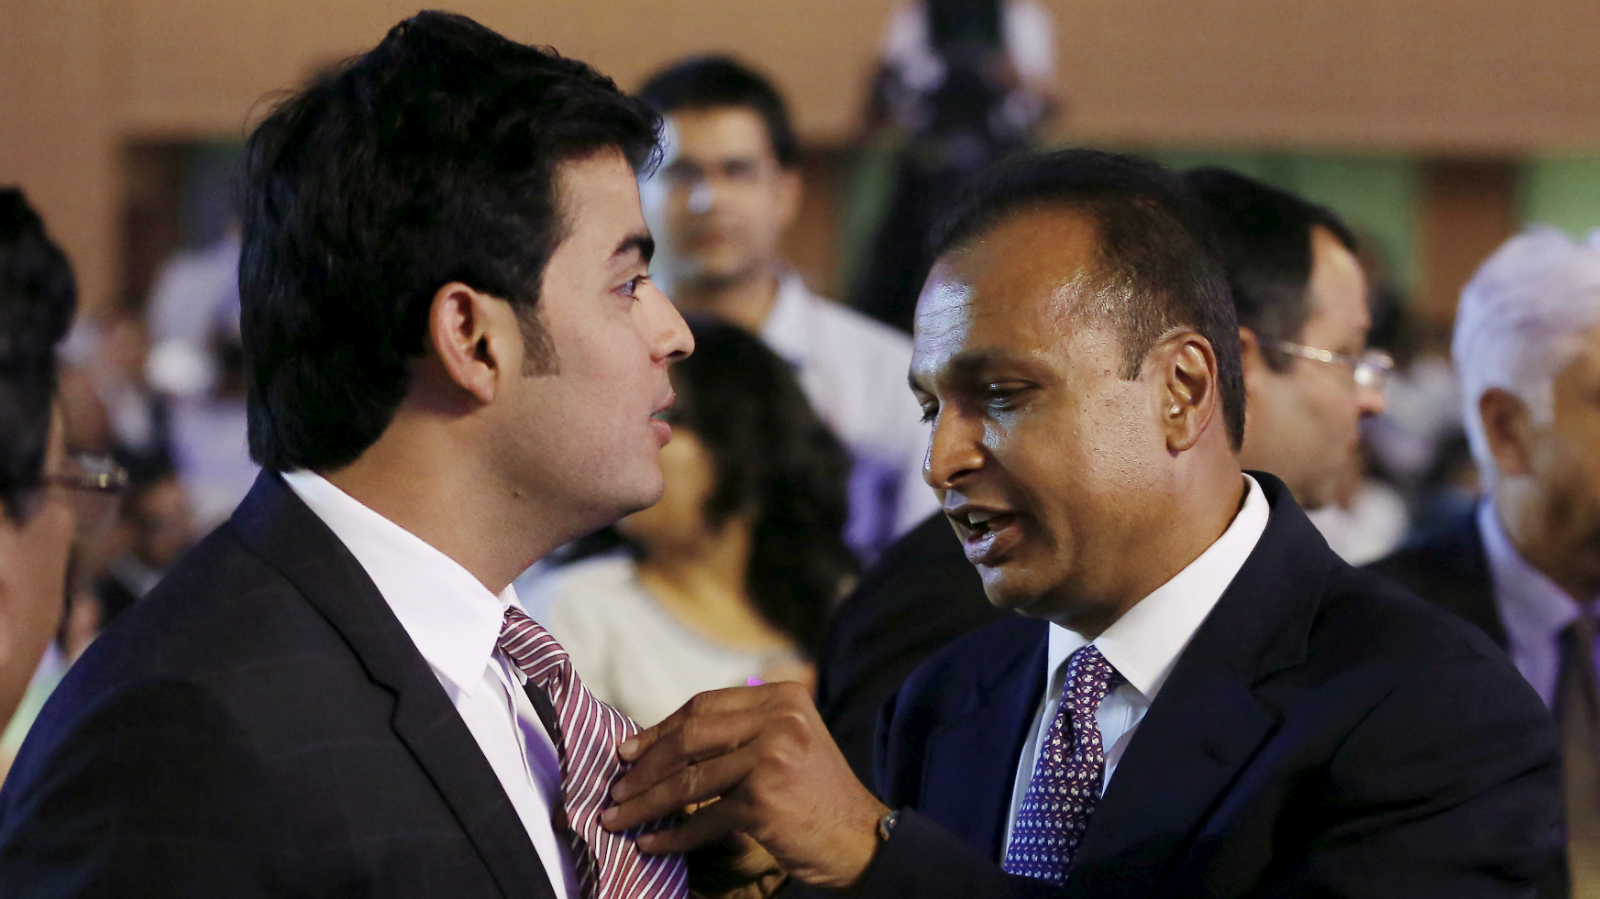 """Anil Ambani, chairman of the Reliance Anil Dhirubhai Ambani Group, adjusts the tie of his nephew Akash Ambani, son of Mukesh Ambani, chairman of Reliance Industries Limited, during the launch of """"Digital India Week"""" in New Delhi, India, July 1, 2015. India is reinvigorating an $18 billion campaign to provide fast internet connections for all, with a """"digital week"""" aimed at popularising Prime Minister Narendra Modi's campaign promise to connect 250,000 villages in India by 2019. REUTERS/Adnan Abidi"""